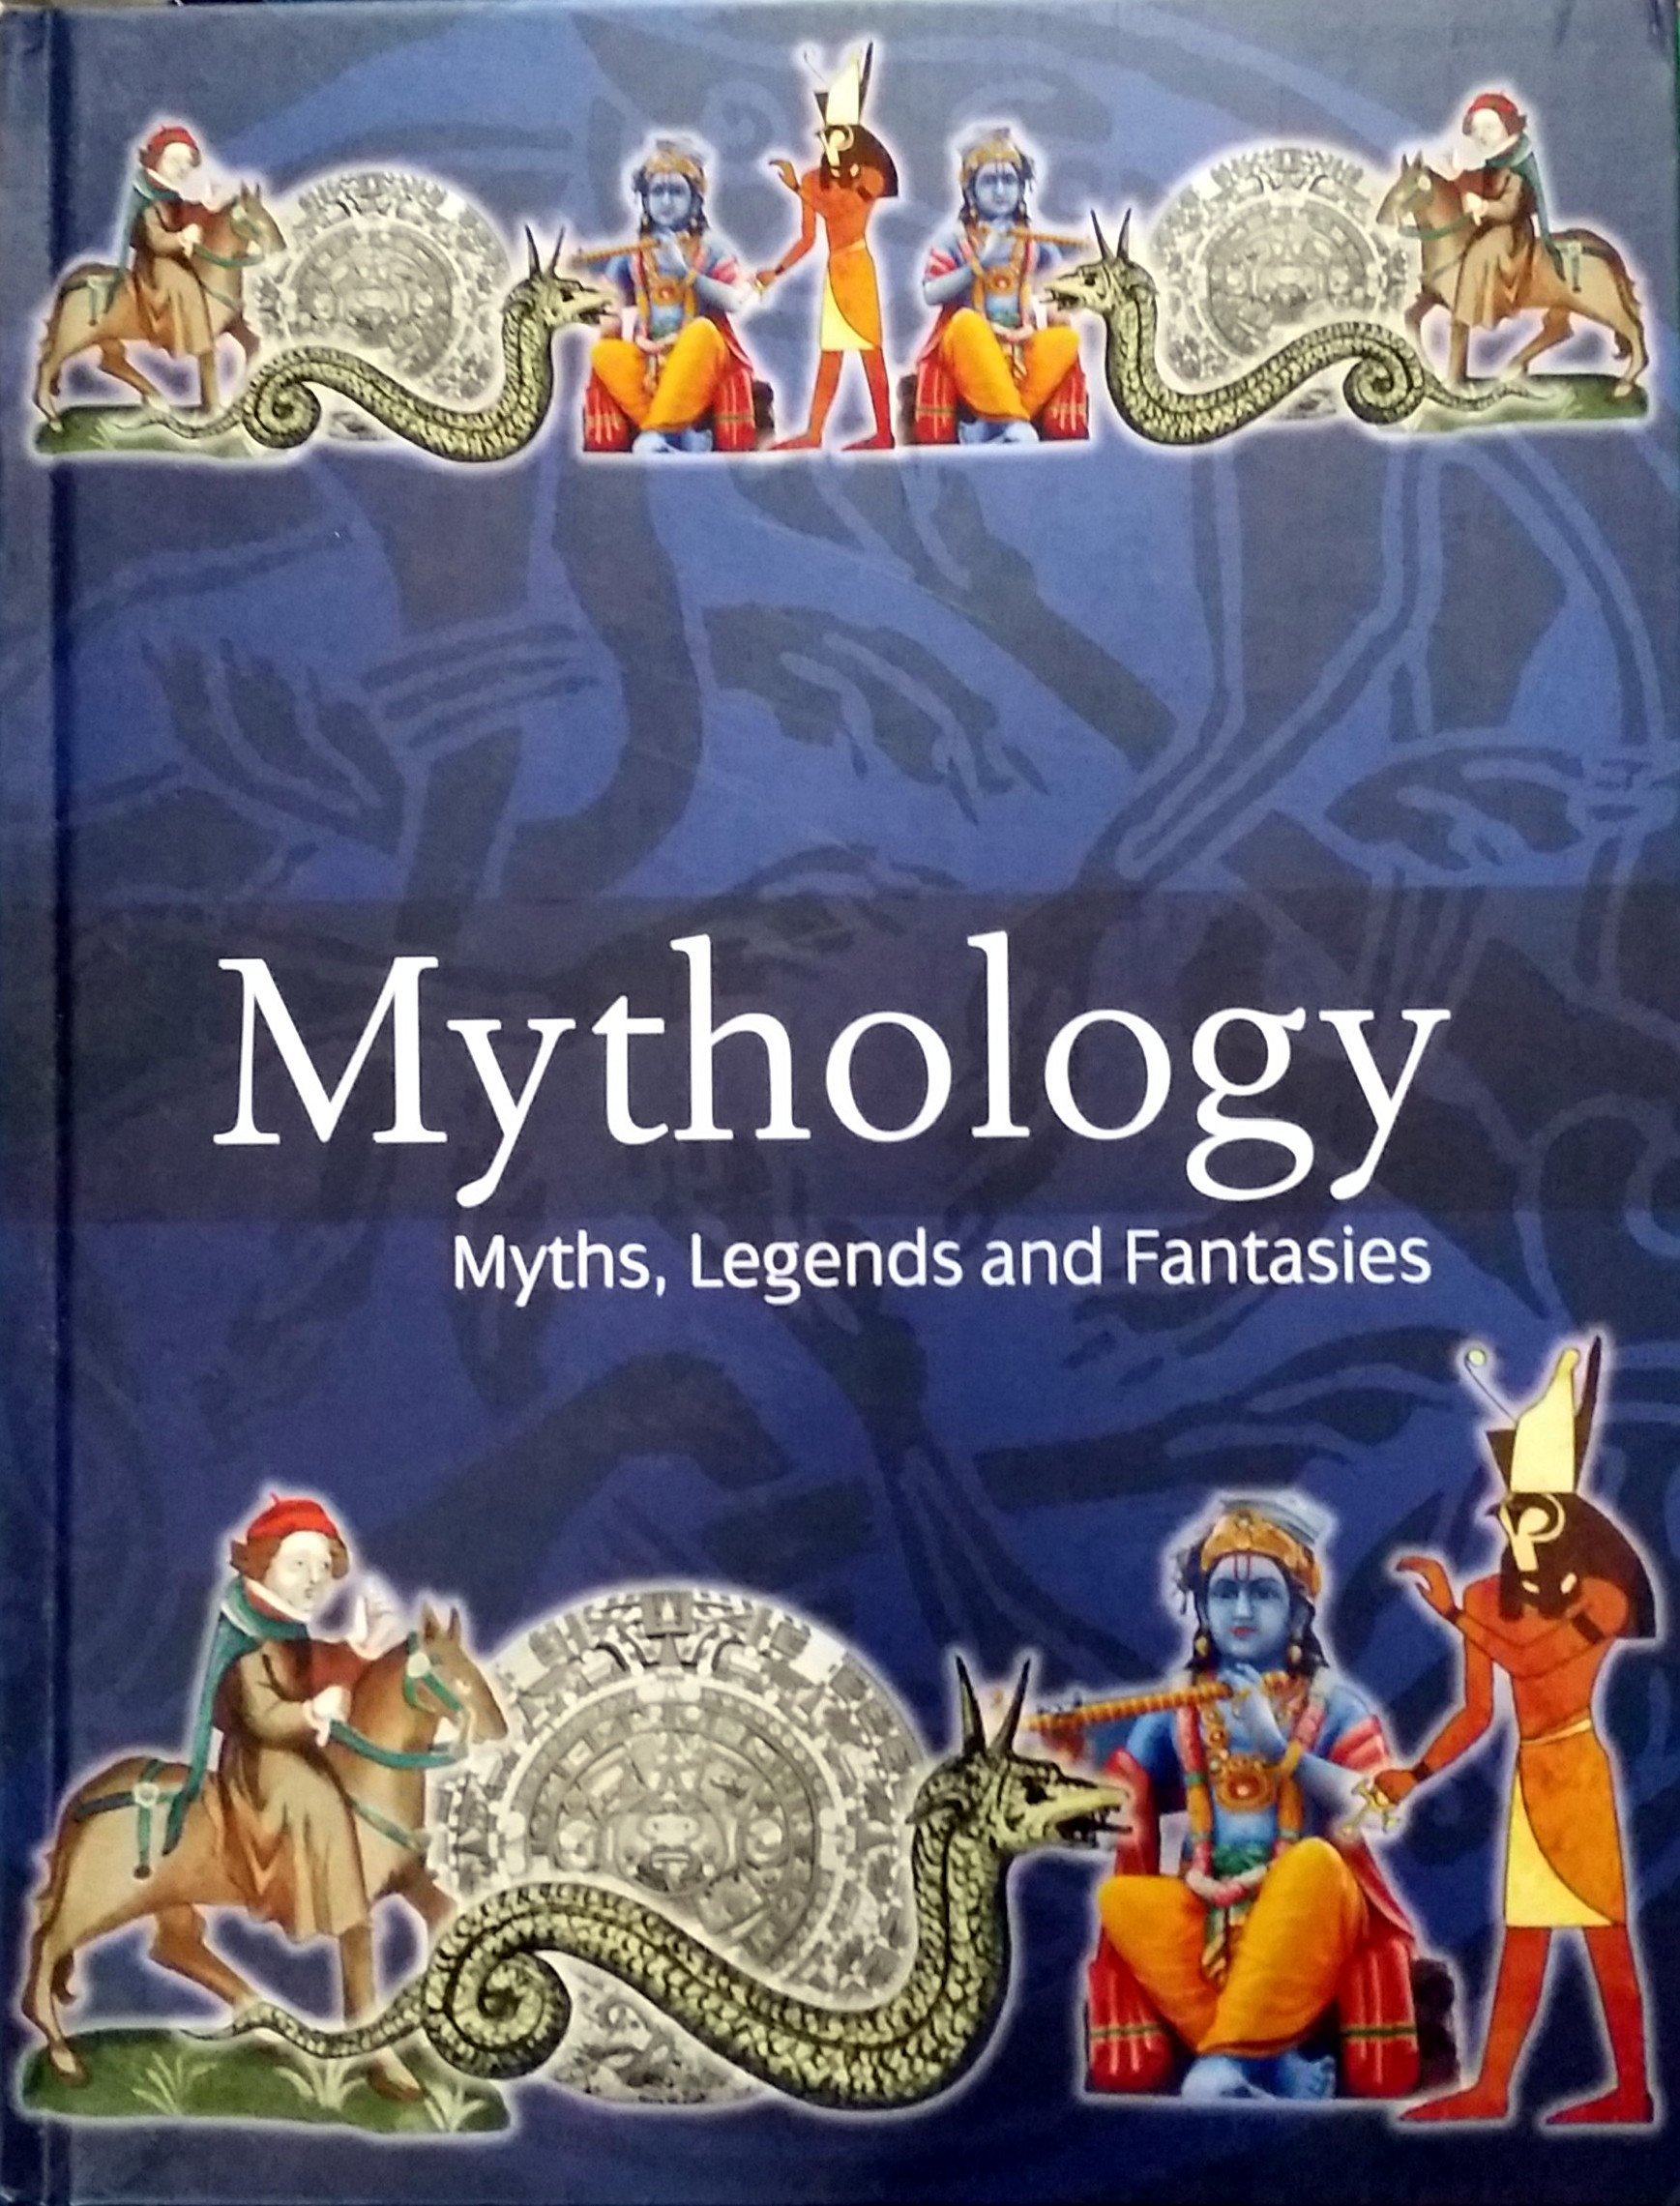 what is the purpose of myths and legends